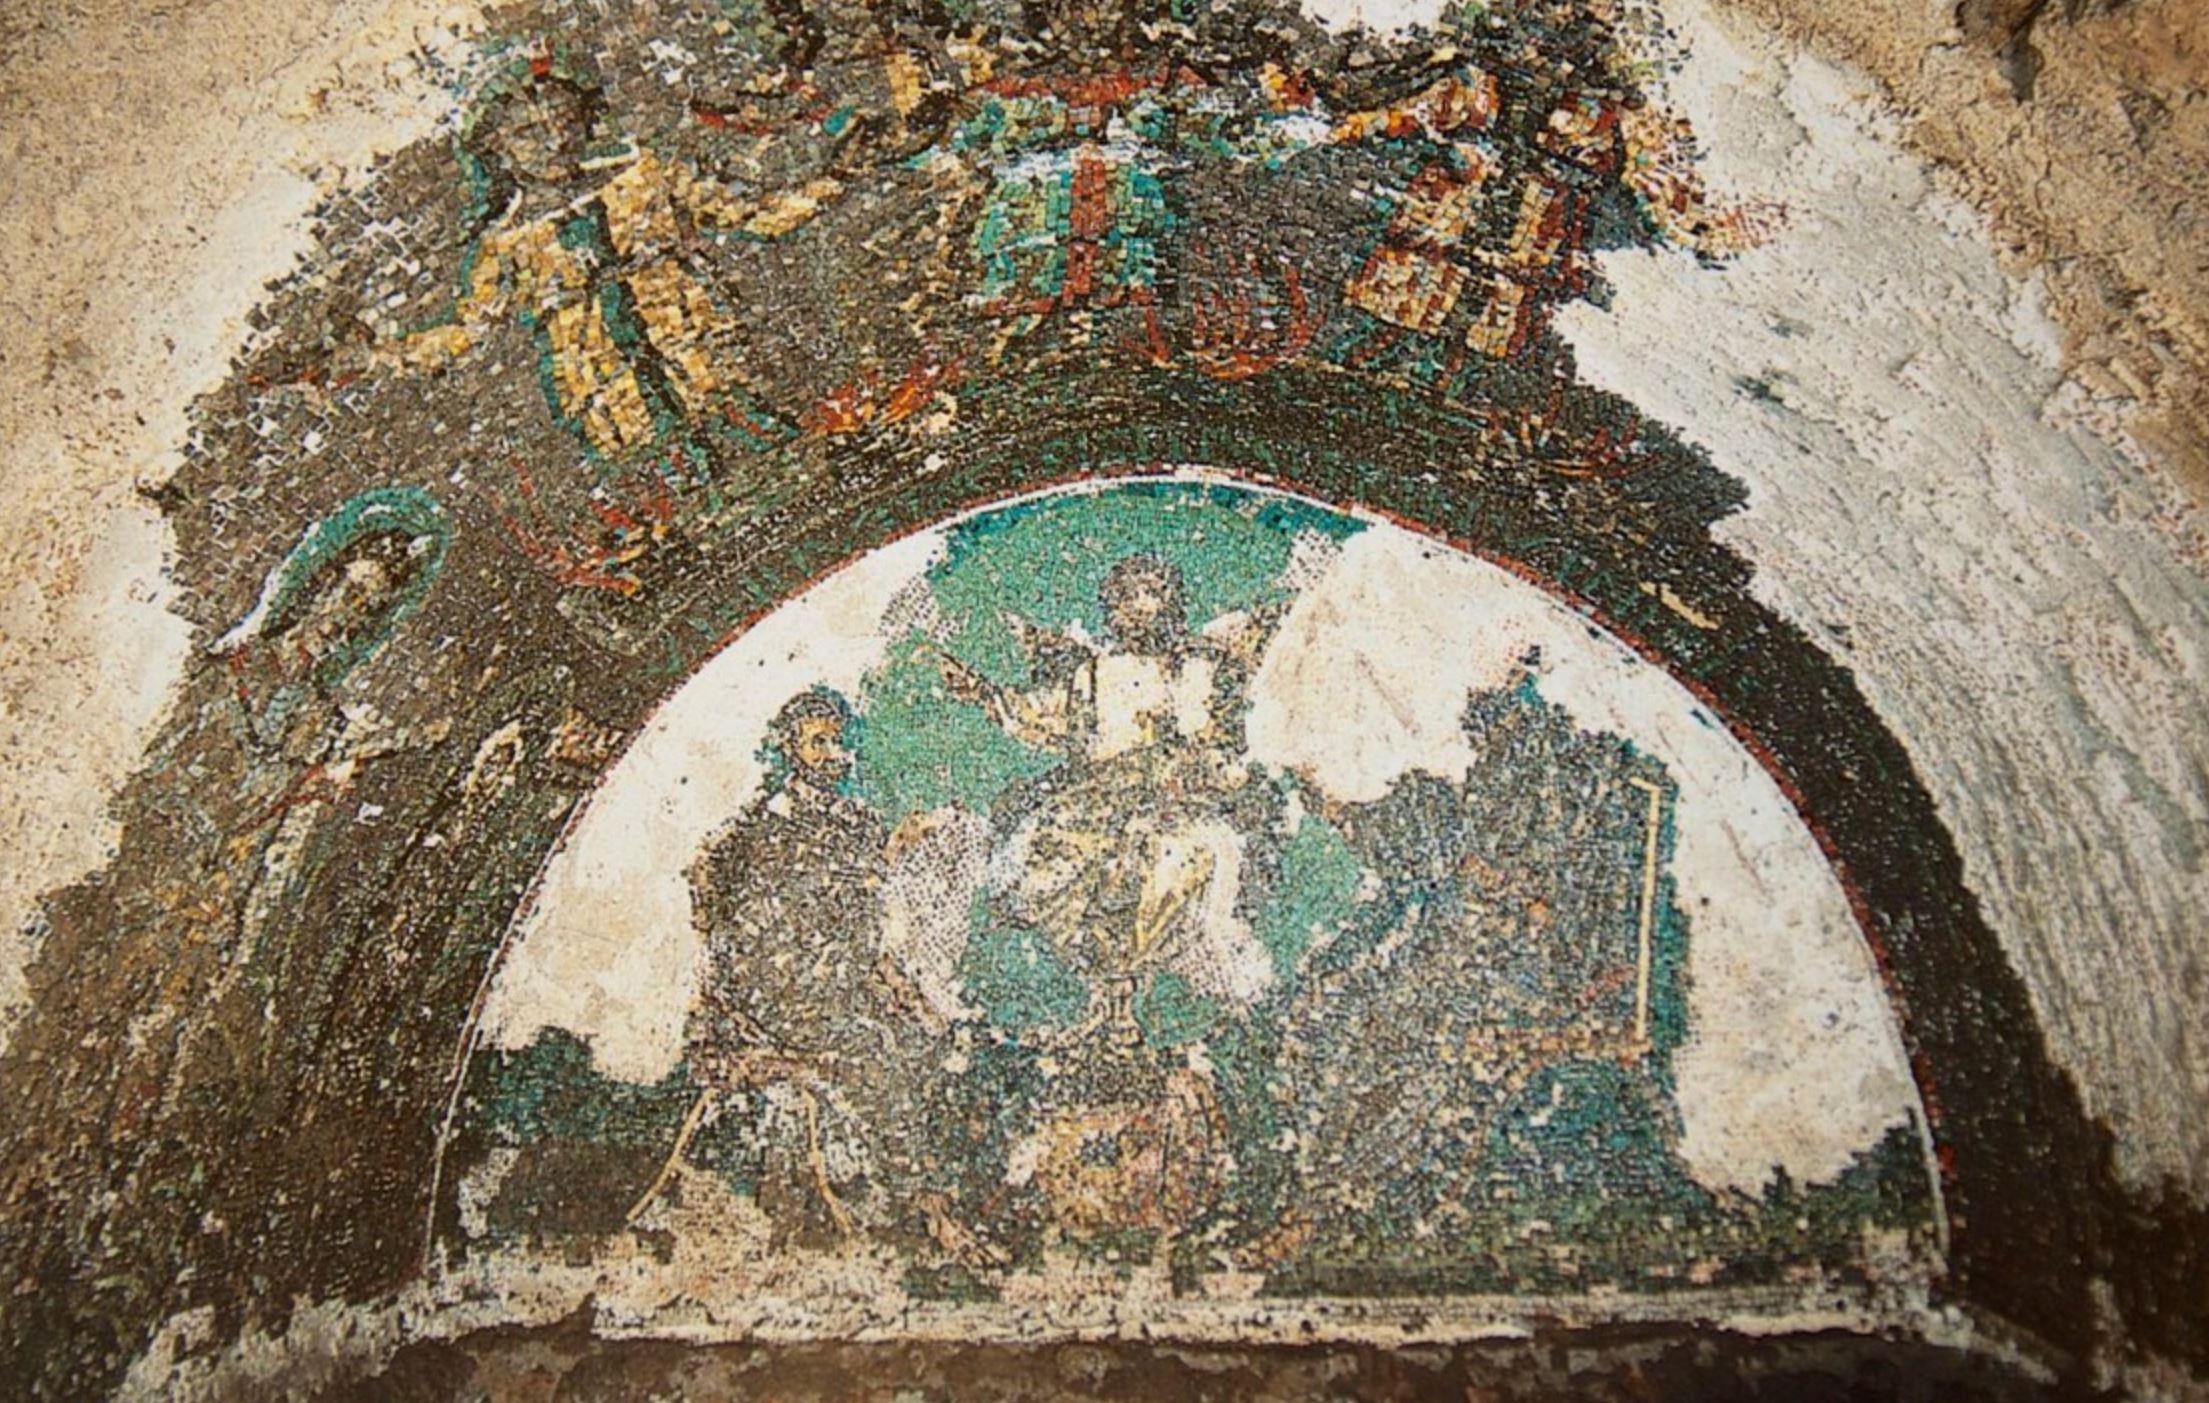 Christ in Aureole of Light, between Peter and Paul. Mosaic, Catacomb of Saint Domitilla, Rome, c. 366-384